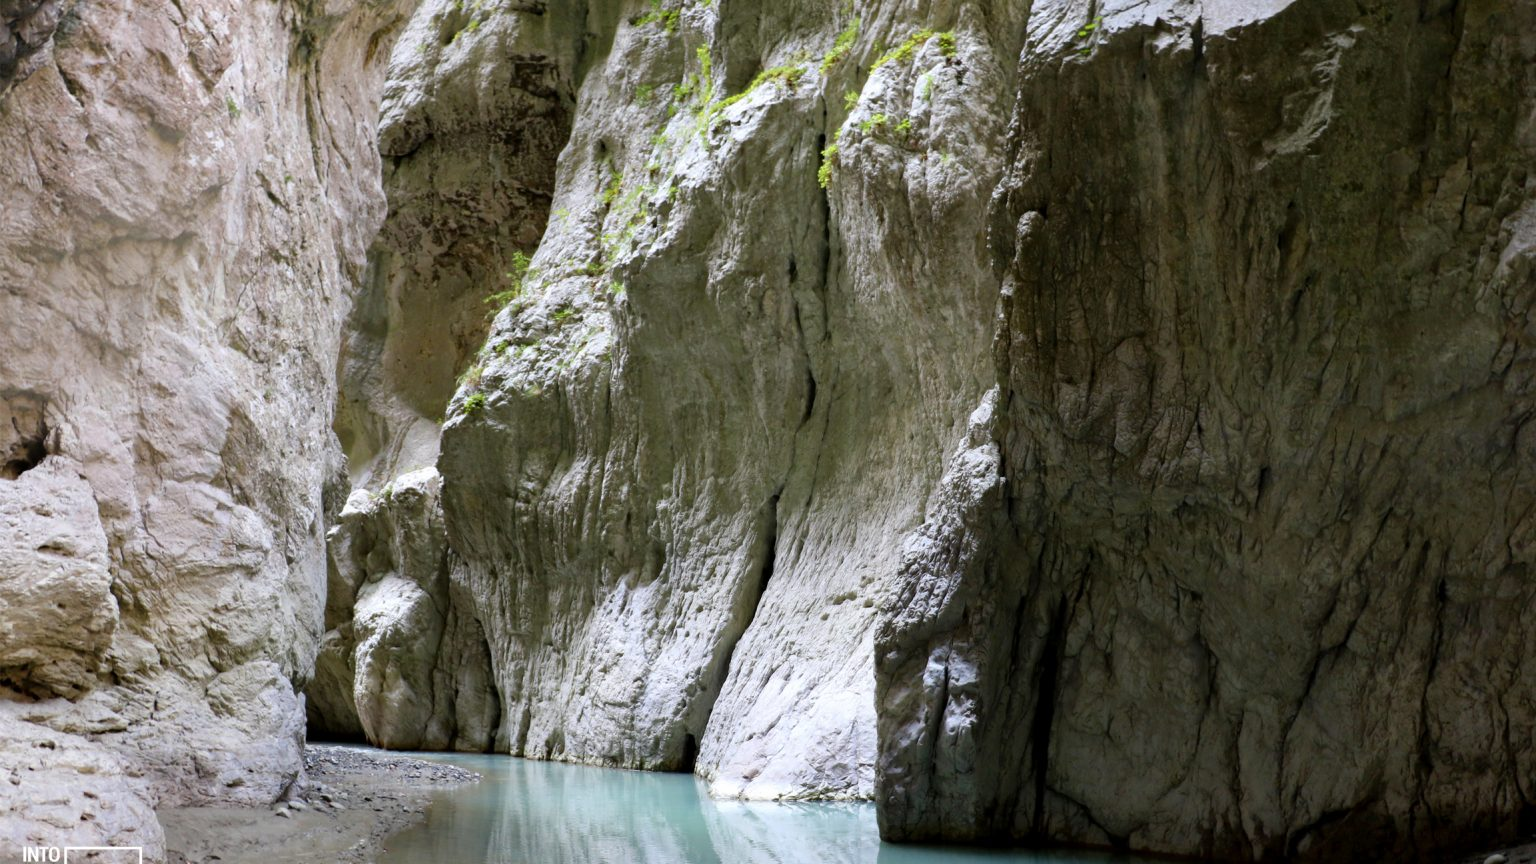 Holta's Canyon, Elbasan, photo by IntoAlbania